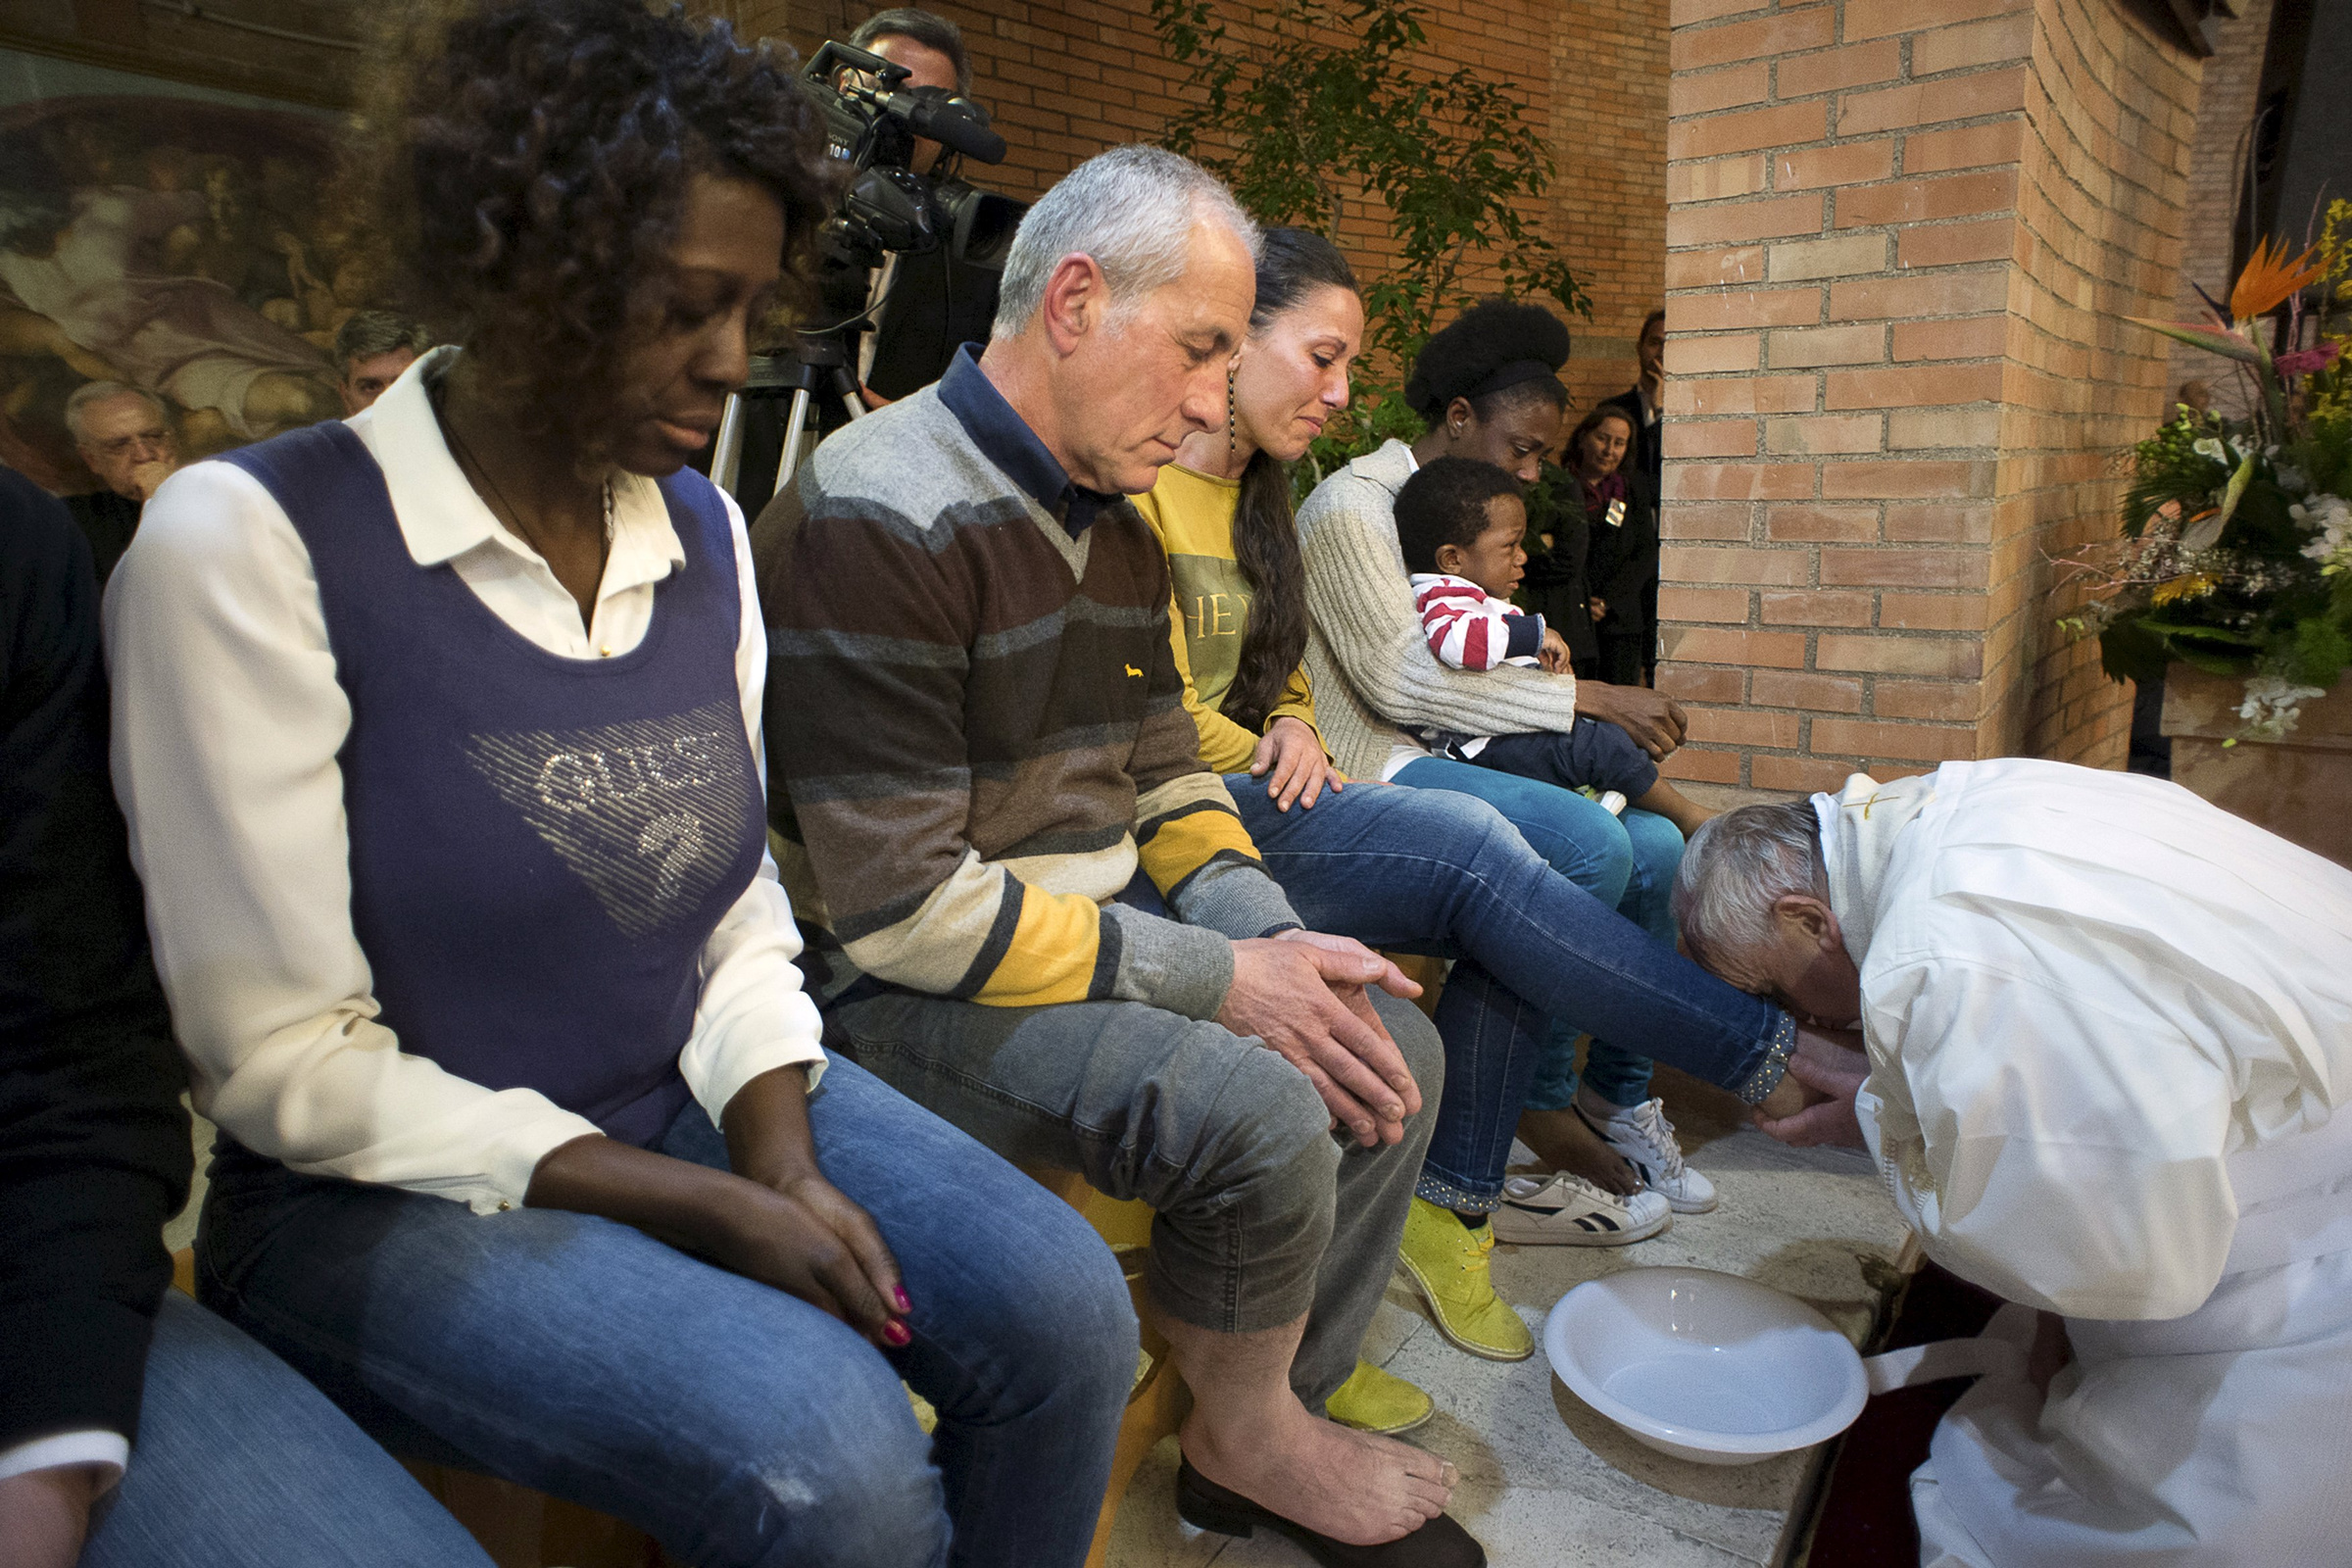 Pope Francis kisses foot of inmate at Rome prison